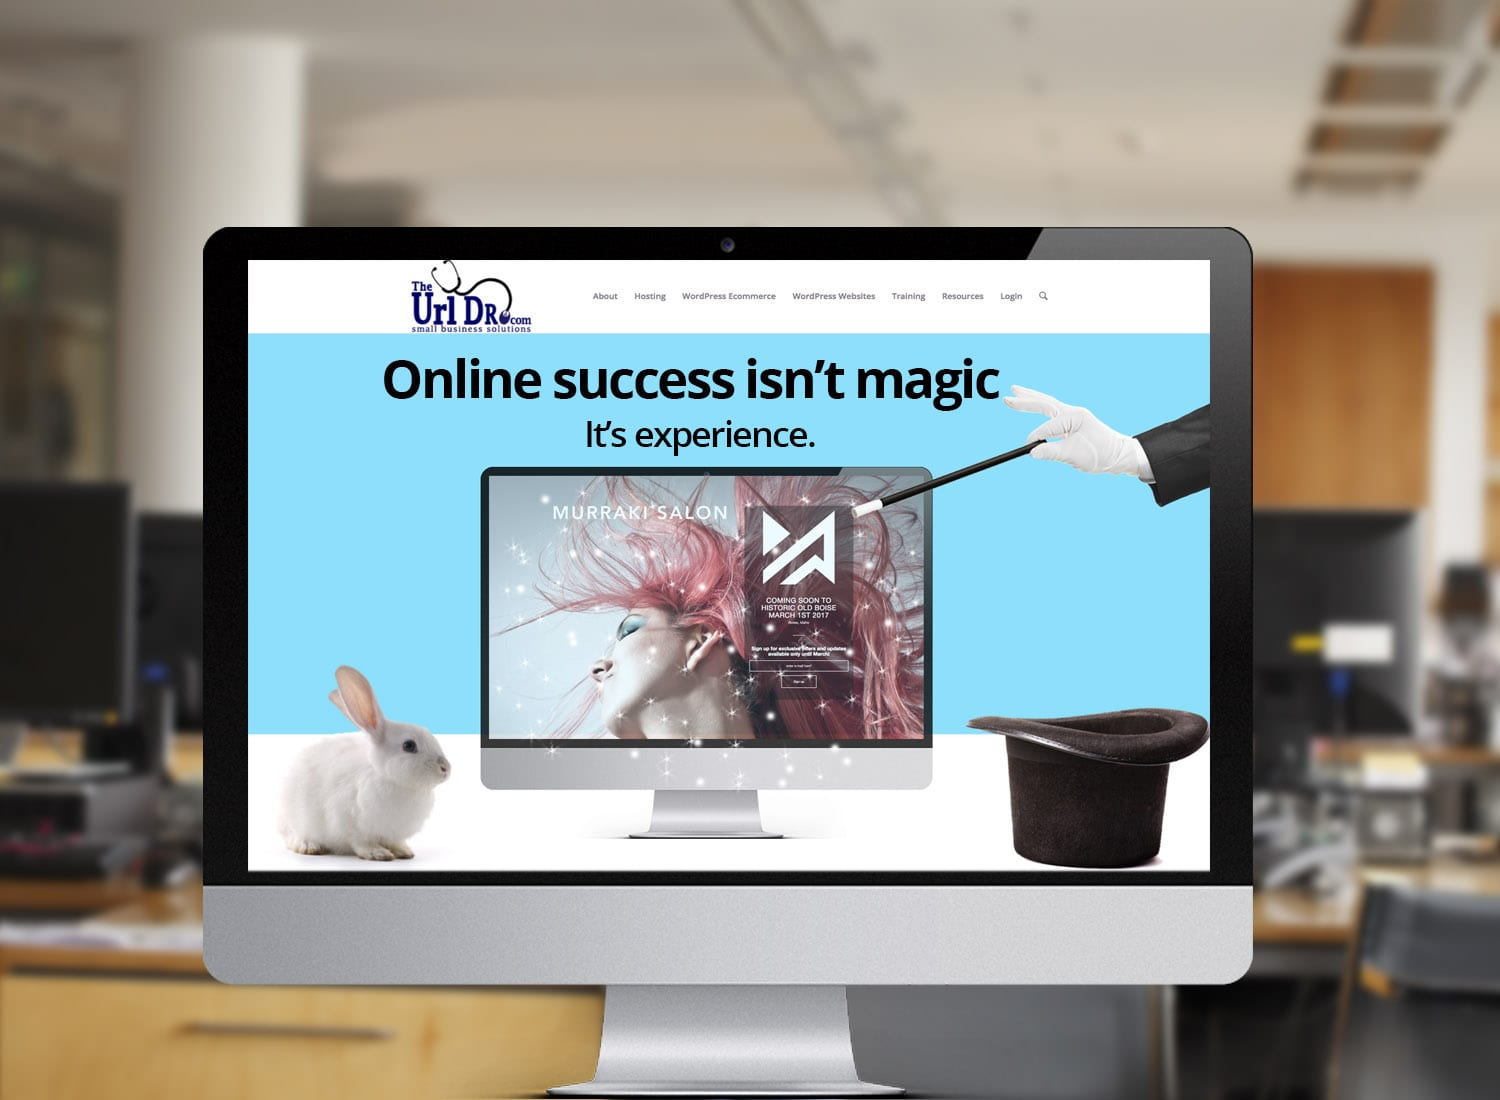 The URL Dr Online Marketing & Web Design for Small Business